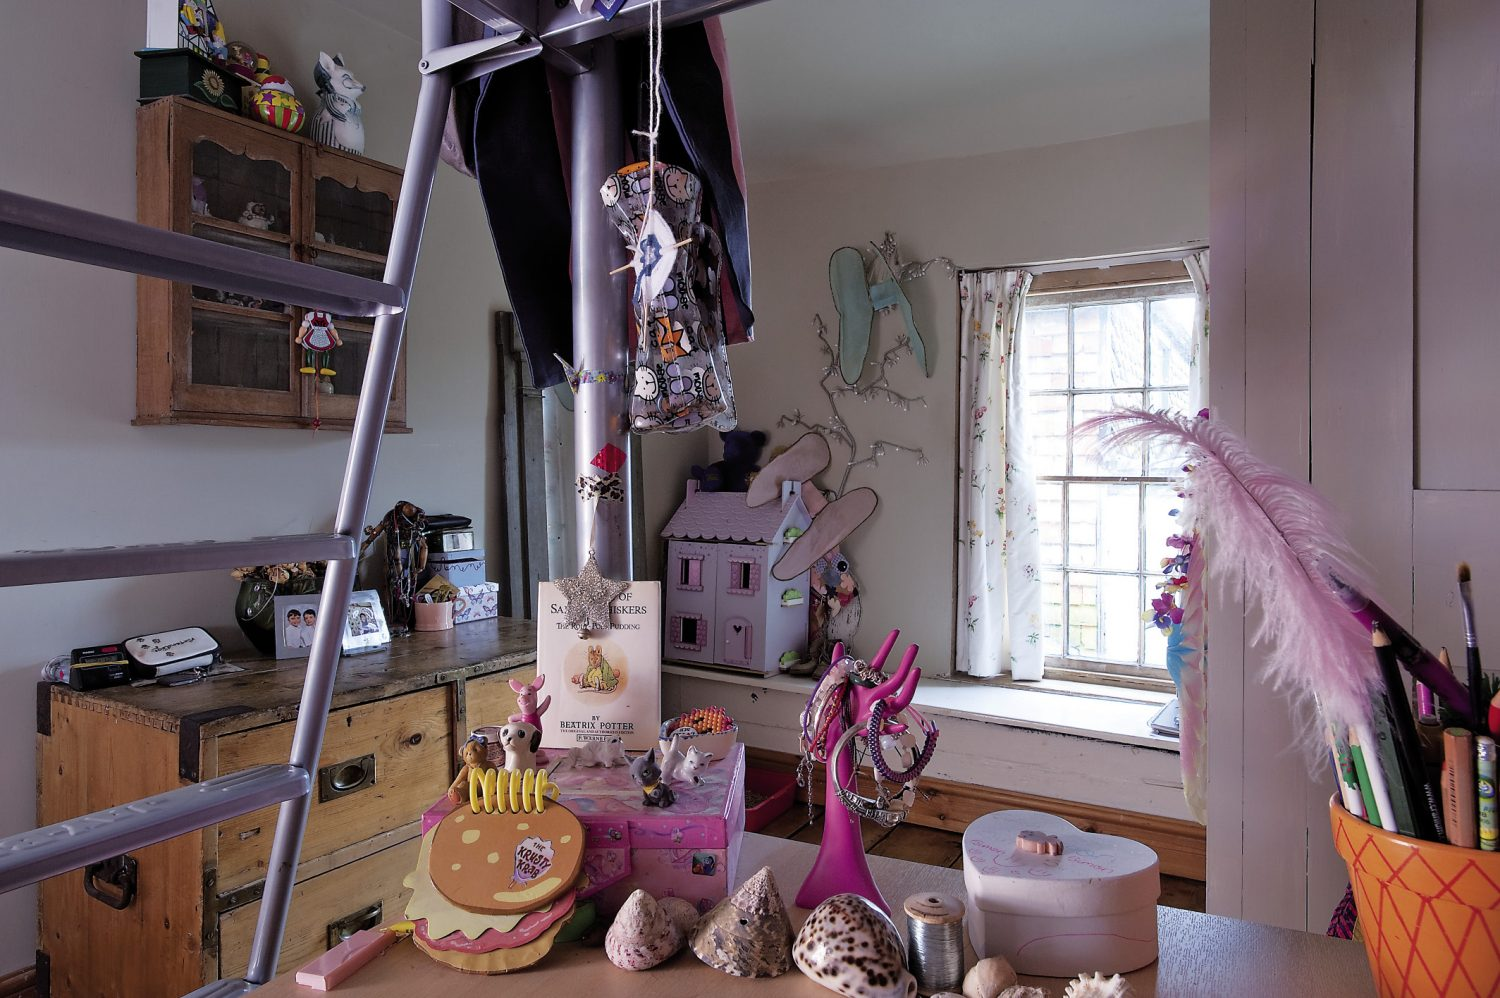 Brad and Jackie's daughters share a room that is full of new and vintage toys. A dolls' house stands by the window that is framed by curtains made from a Georgian style spriggy floral print. The girls' desk already shows signs of an enthusiasm for collecting things too, with shells and found objects carefully arranged in groups